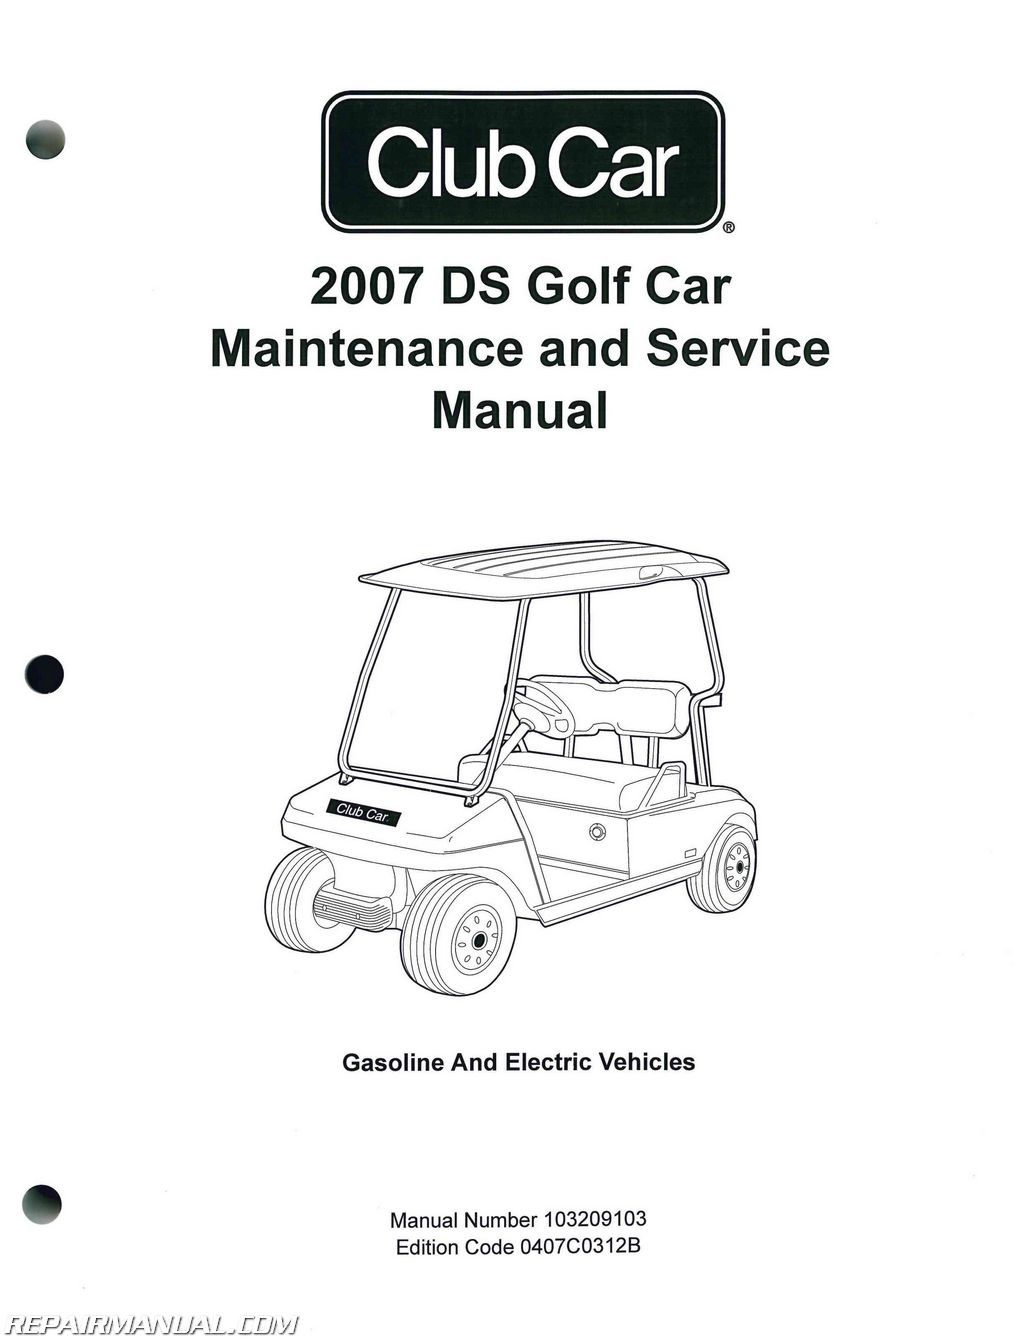 Wiring Diagram together with 3 Typical Car Starting System Diagram also Electrical moreover Lucas Alternator Ford New Holland Tractor Wiring Diagram as well Starter Wiring Diagram Jd 2640. on tractor ignition switch wiring diagram